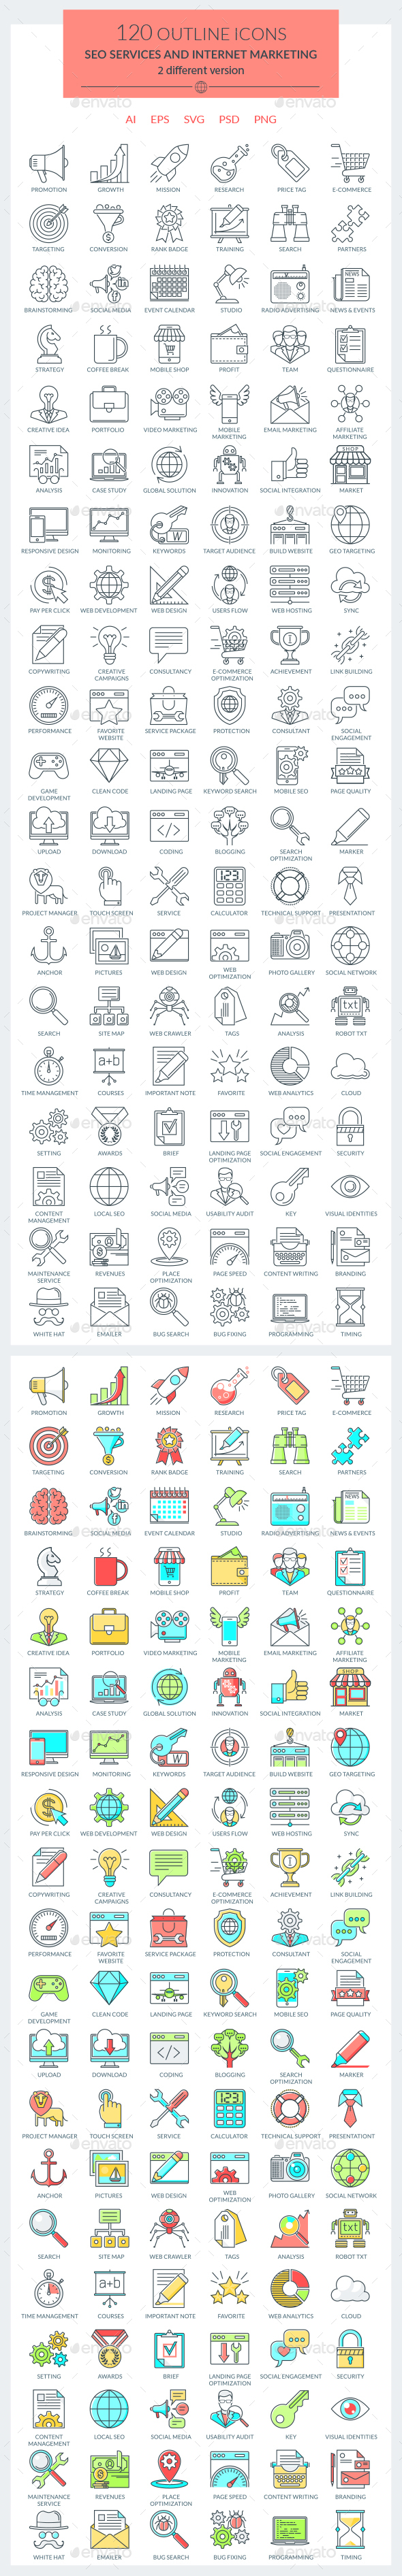 SEO Services and Internet Marketing Icons - Web Icons